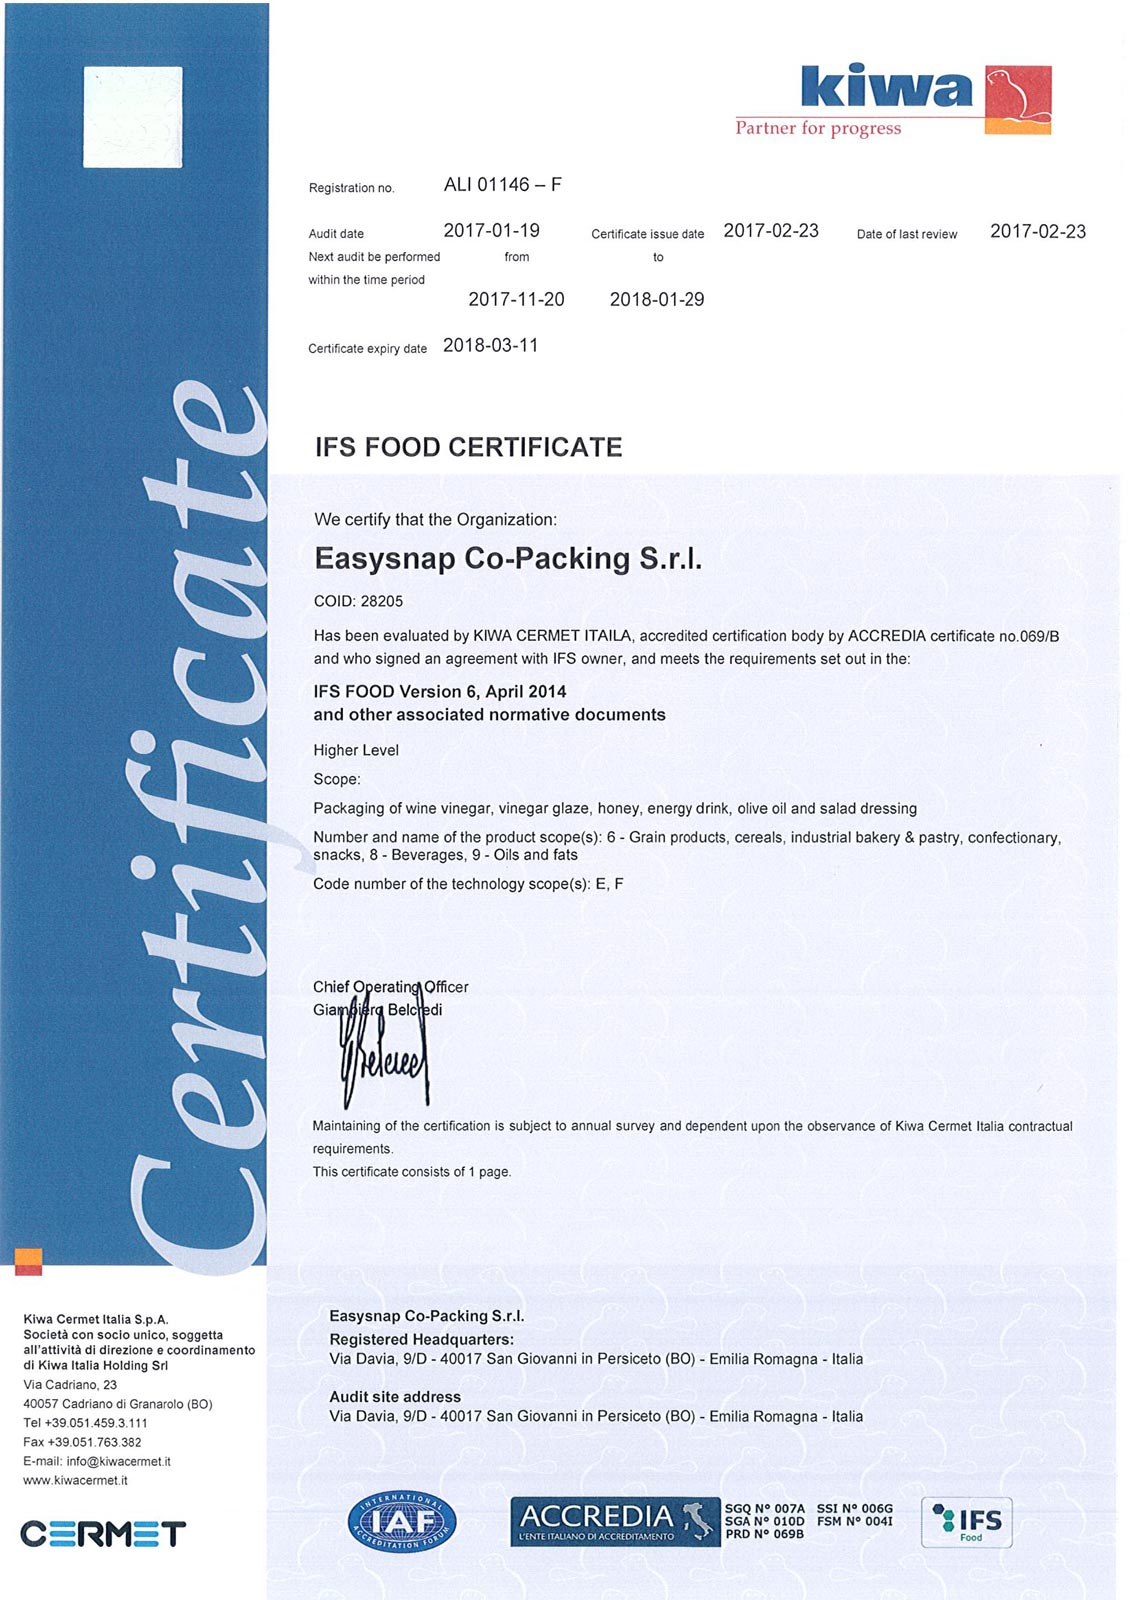 Easysnap Co-packing IFS Quality Certification